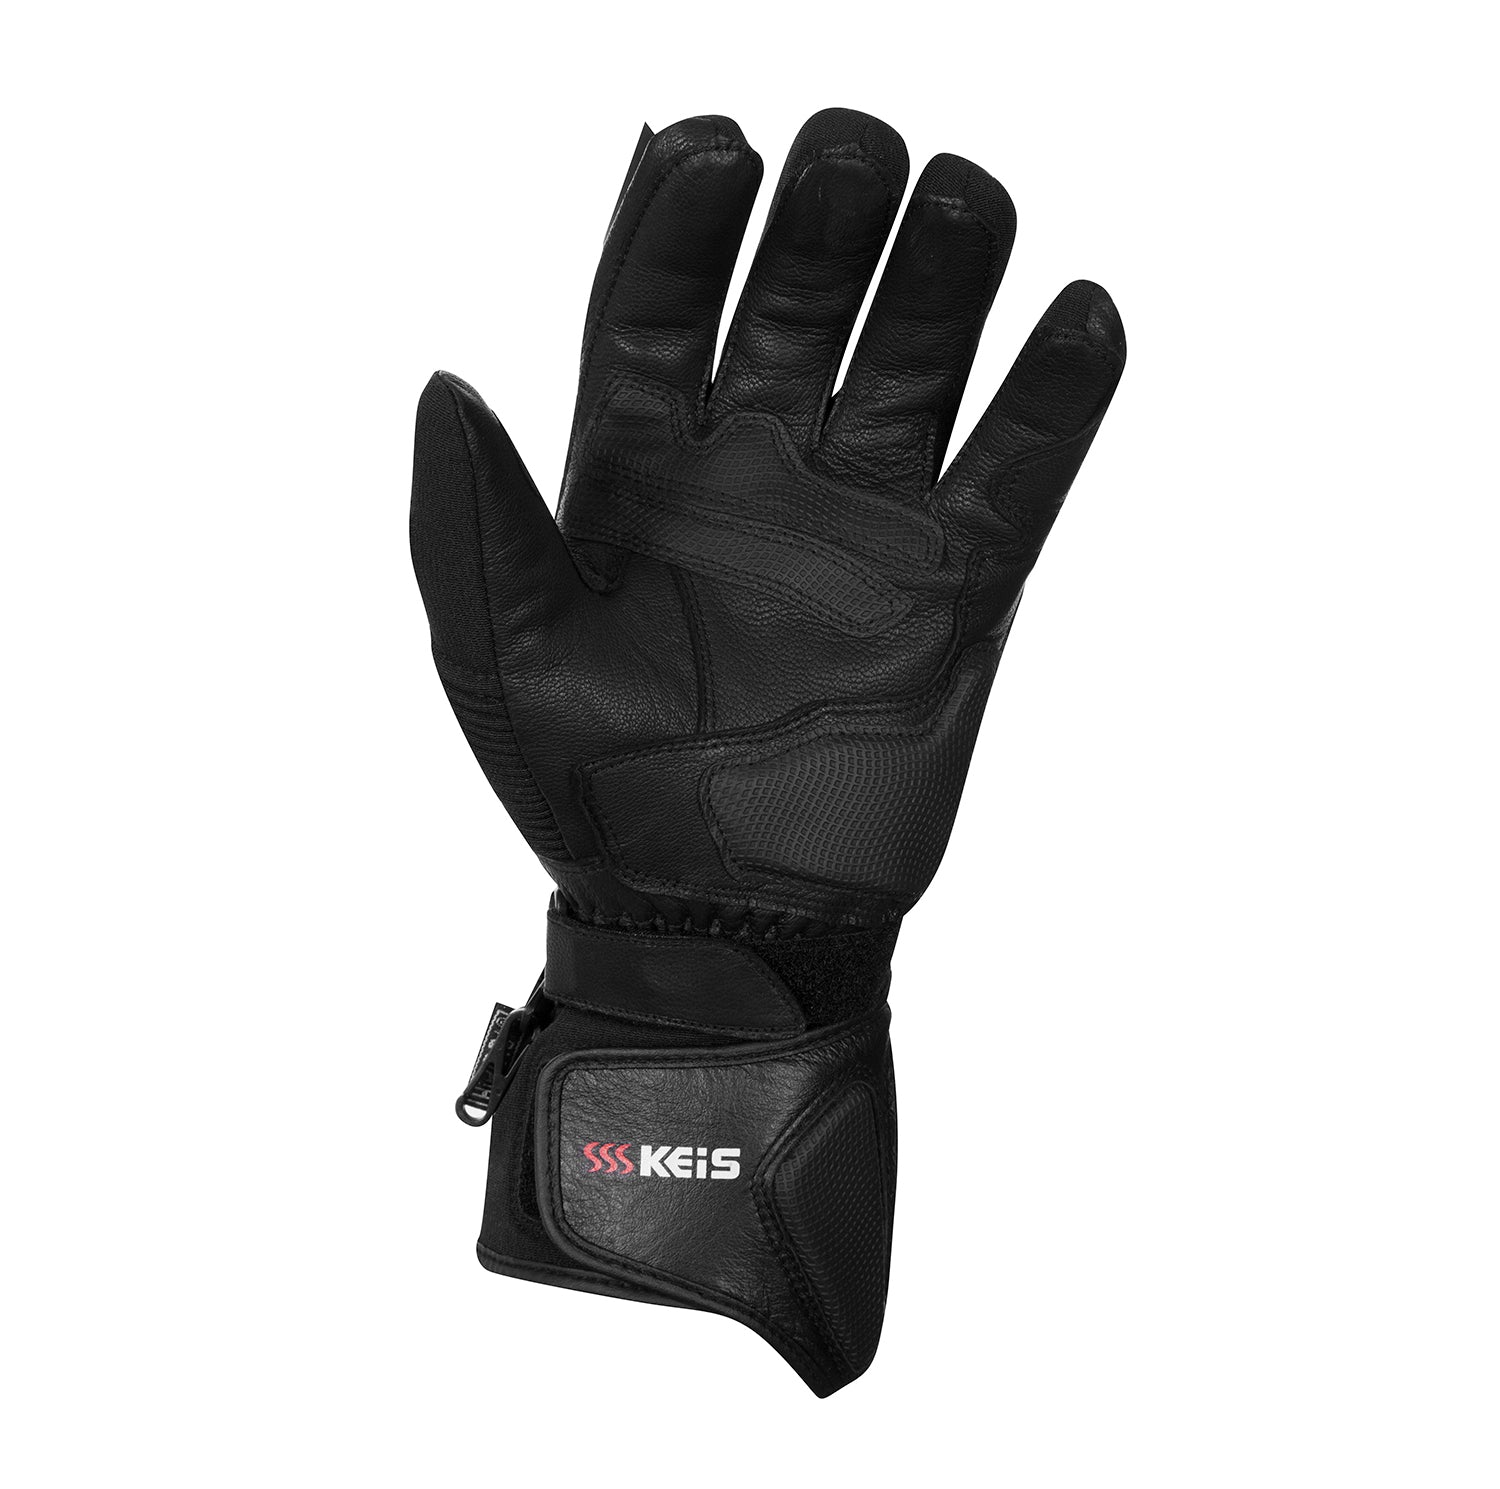 Keis heated motorcycle gloves G501 palm